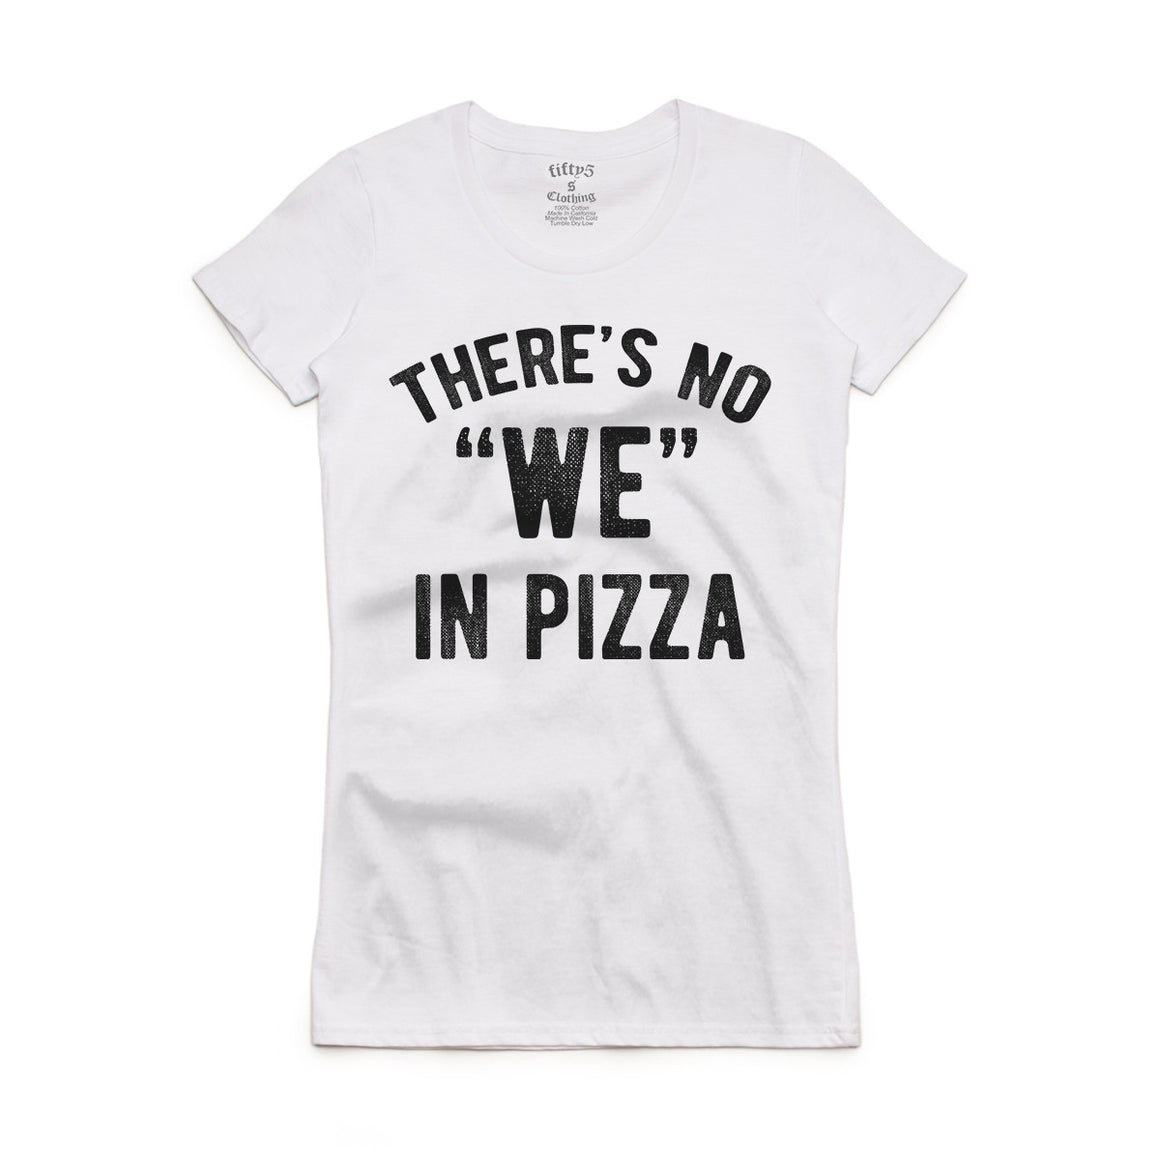 Fifty5 Clothing There's No We In Pizza Women's Crew Neck T-Shirt